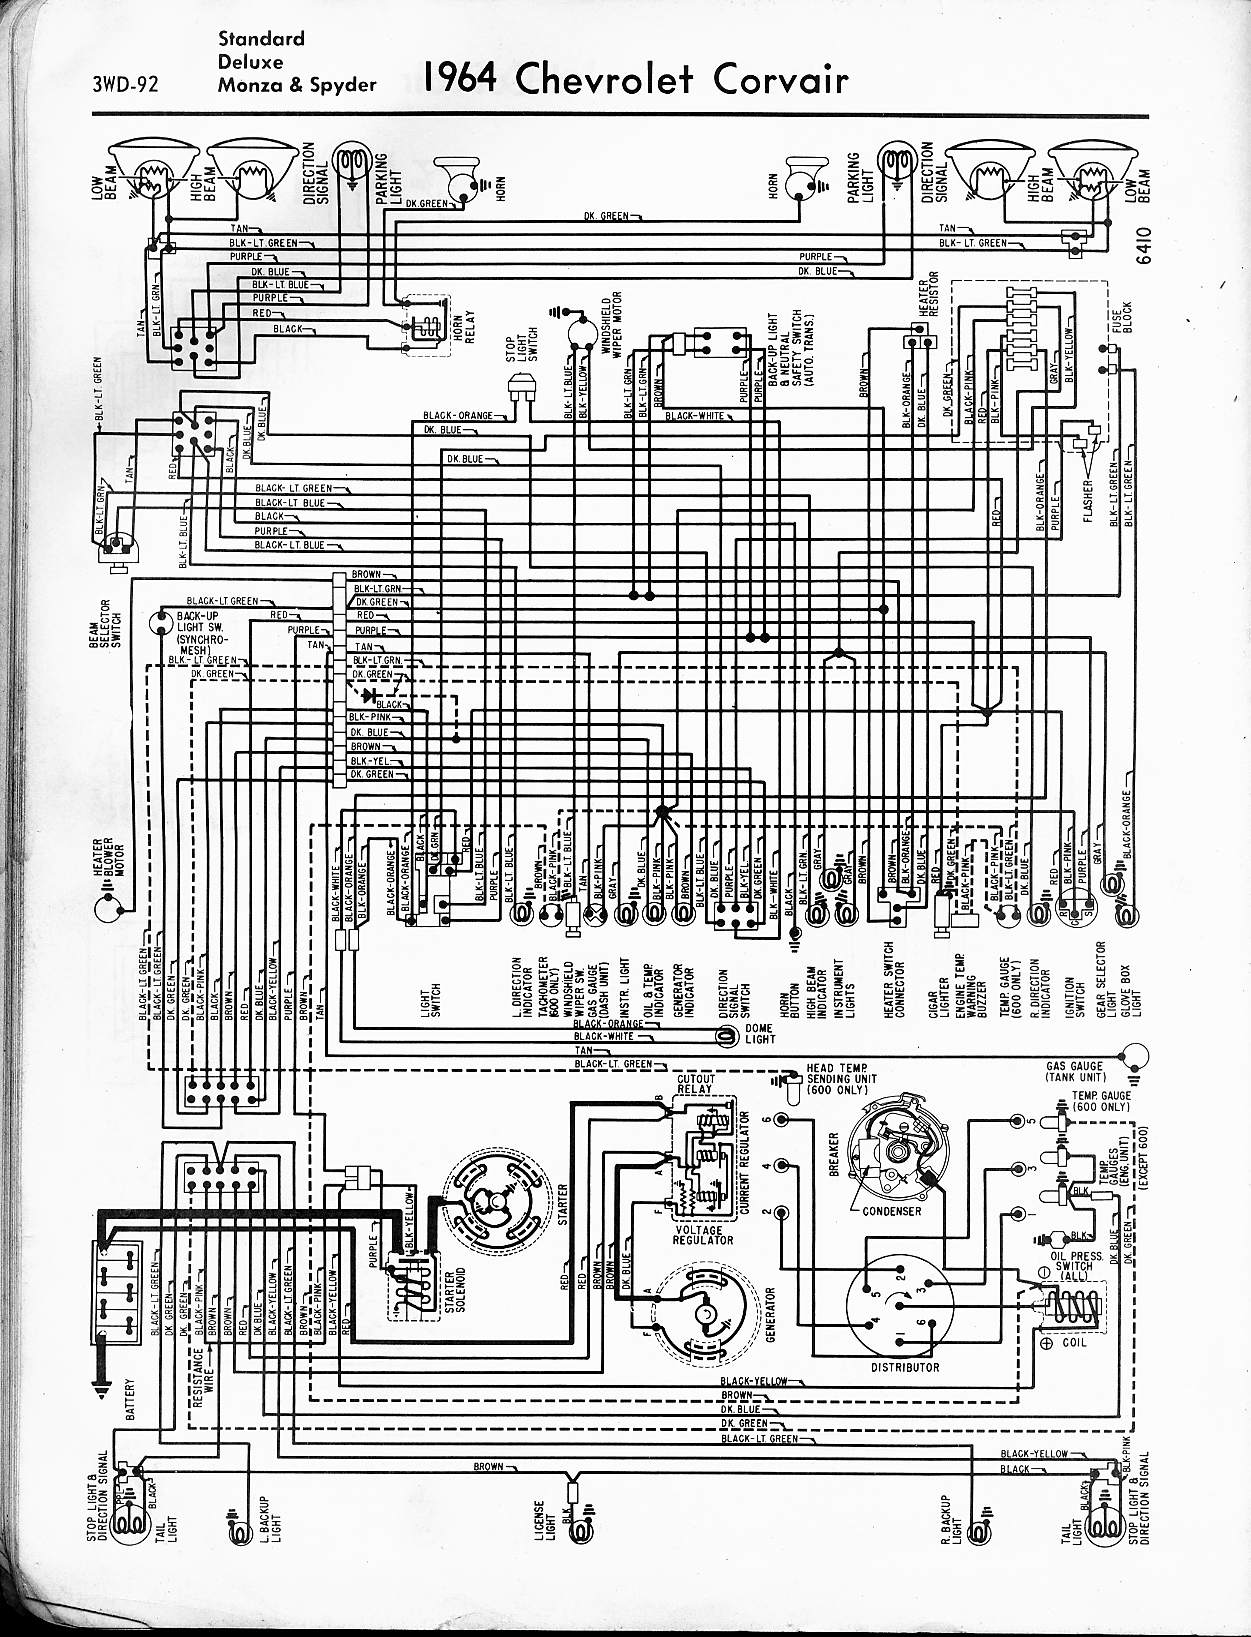 1964 nova wiring diagram experts of wiring diagram u2022 rh evilcloud co uk